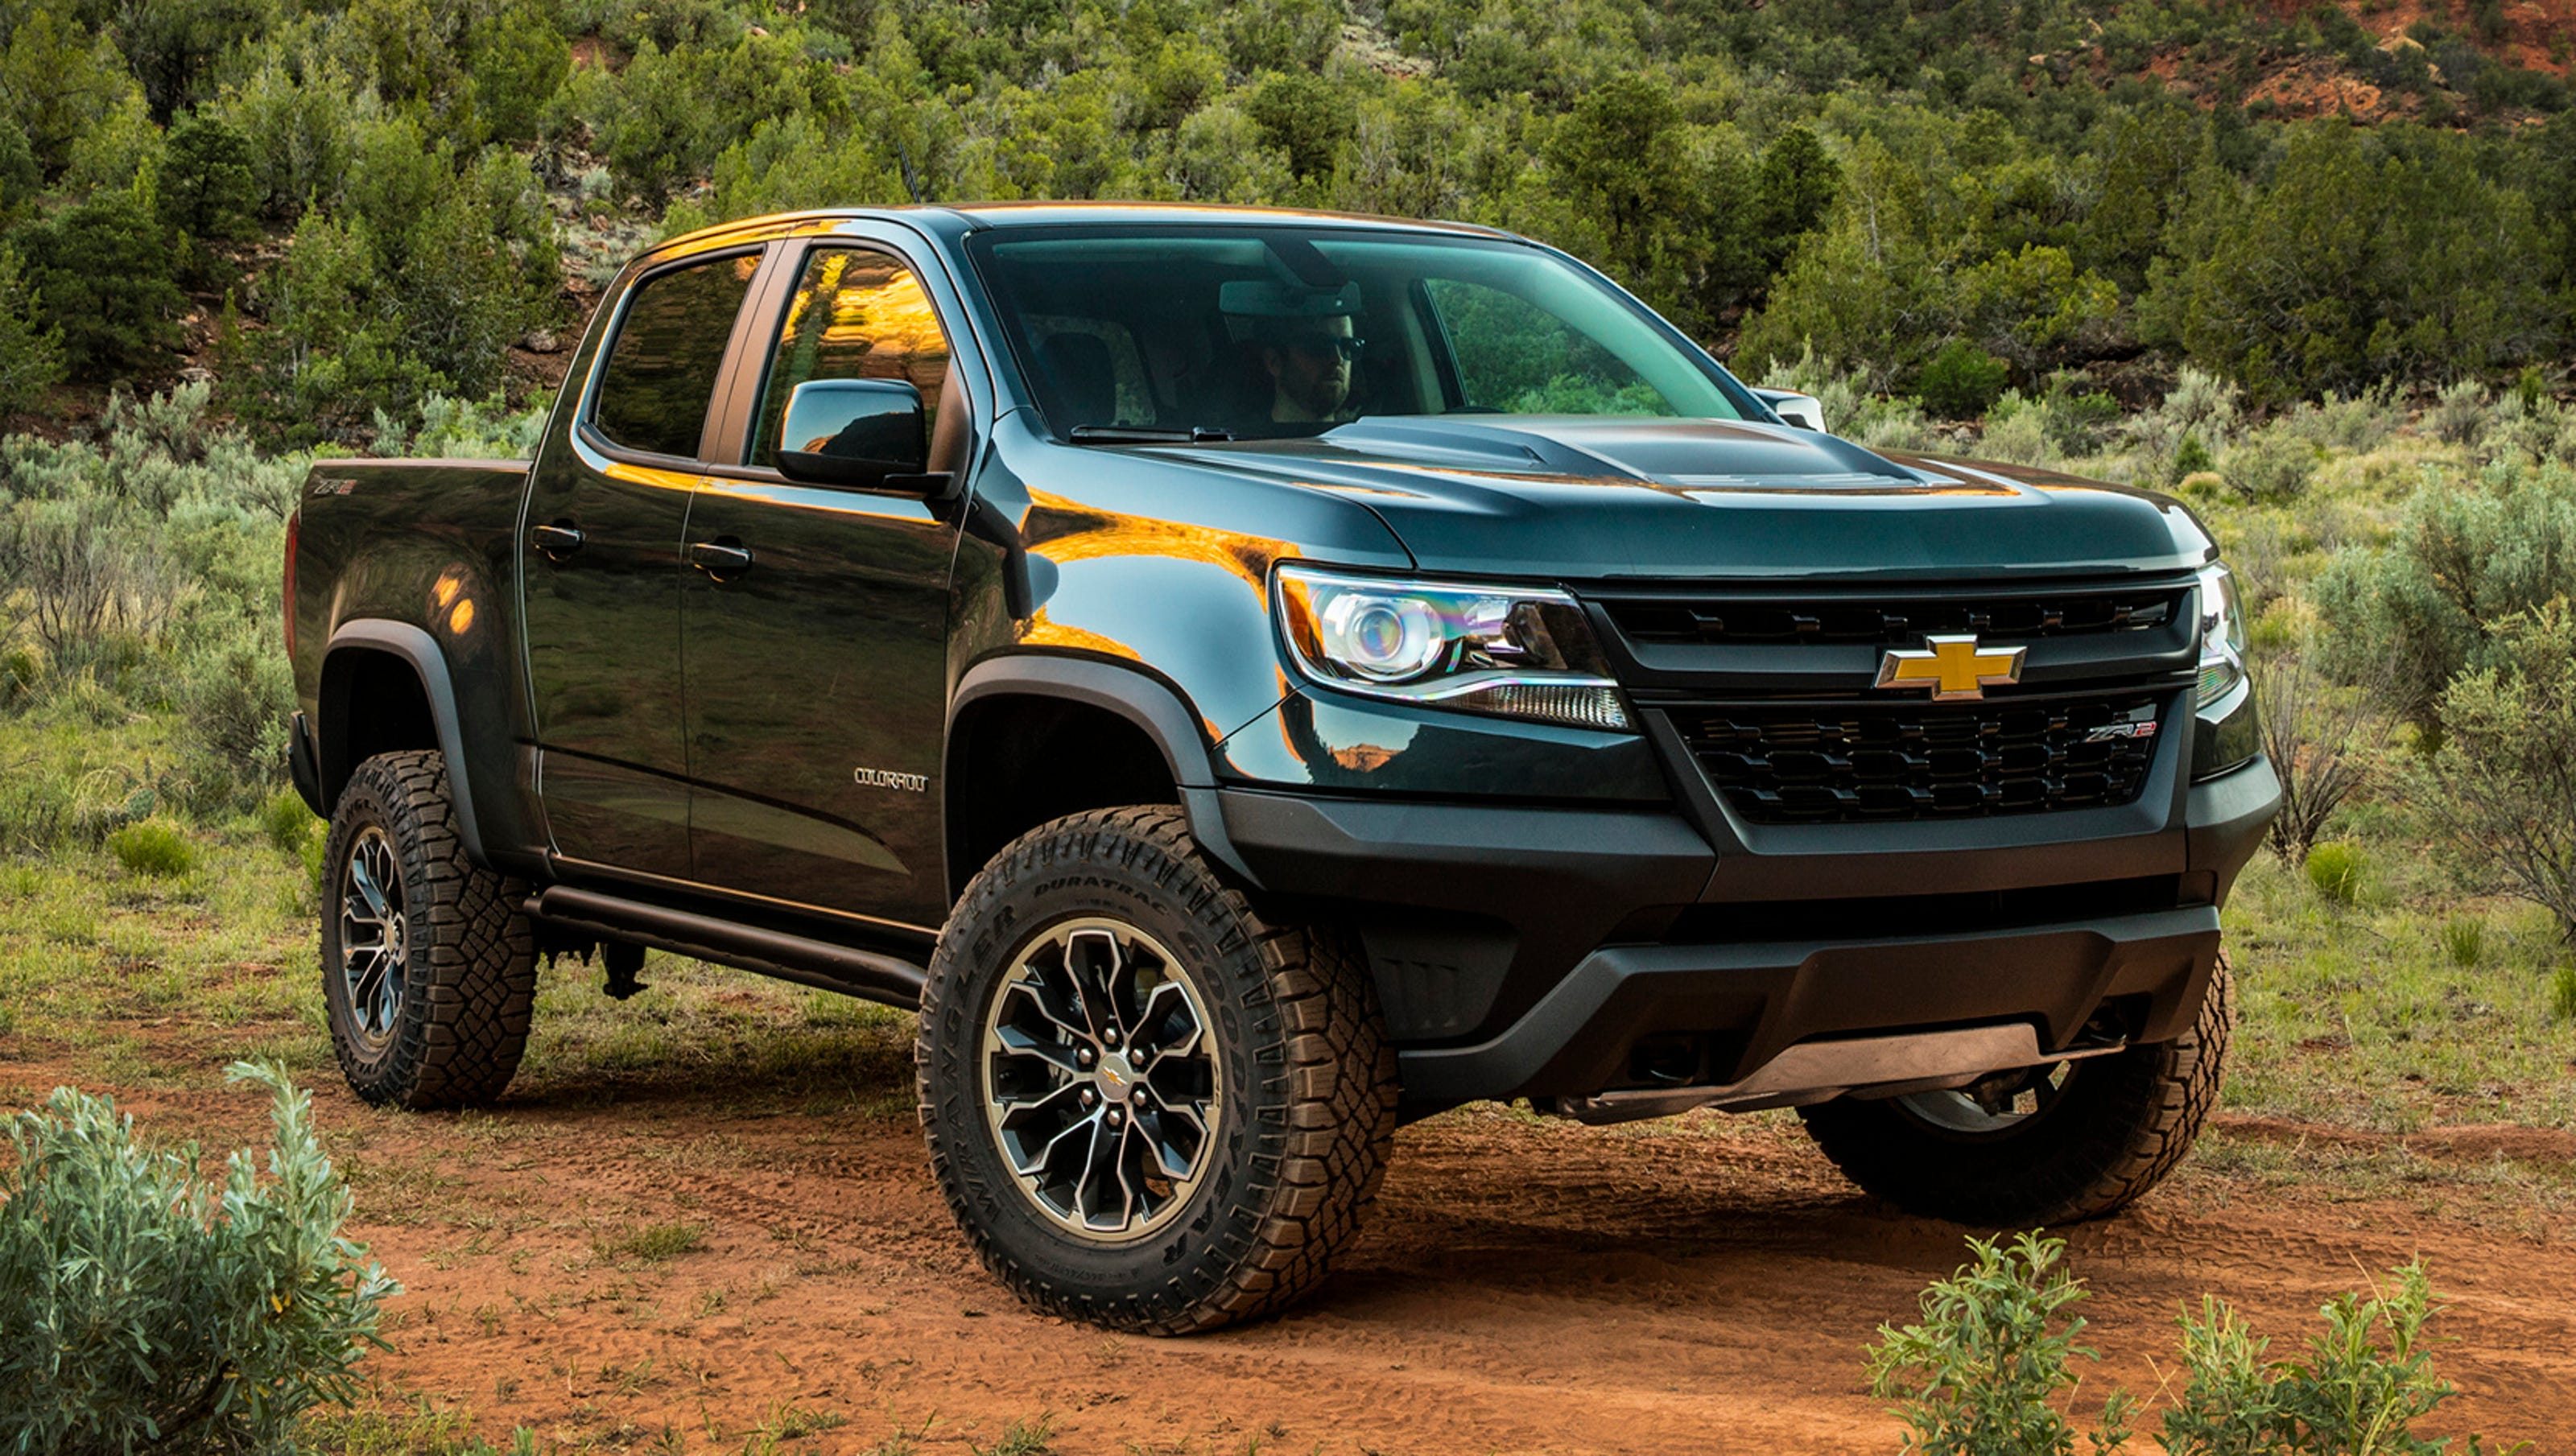 2018 Chevy Silverado >> Can't afford full-size? Edmunds compares 5 midsize pickup trucks